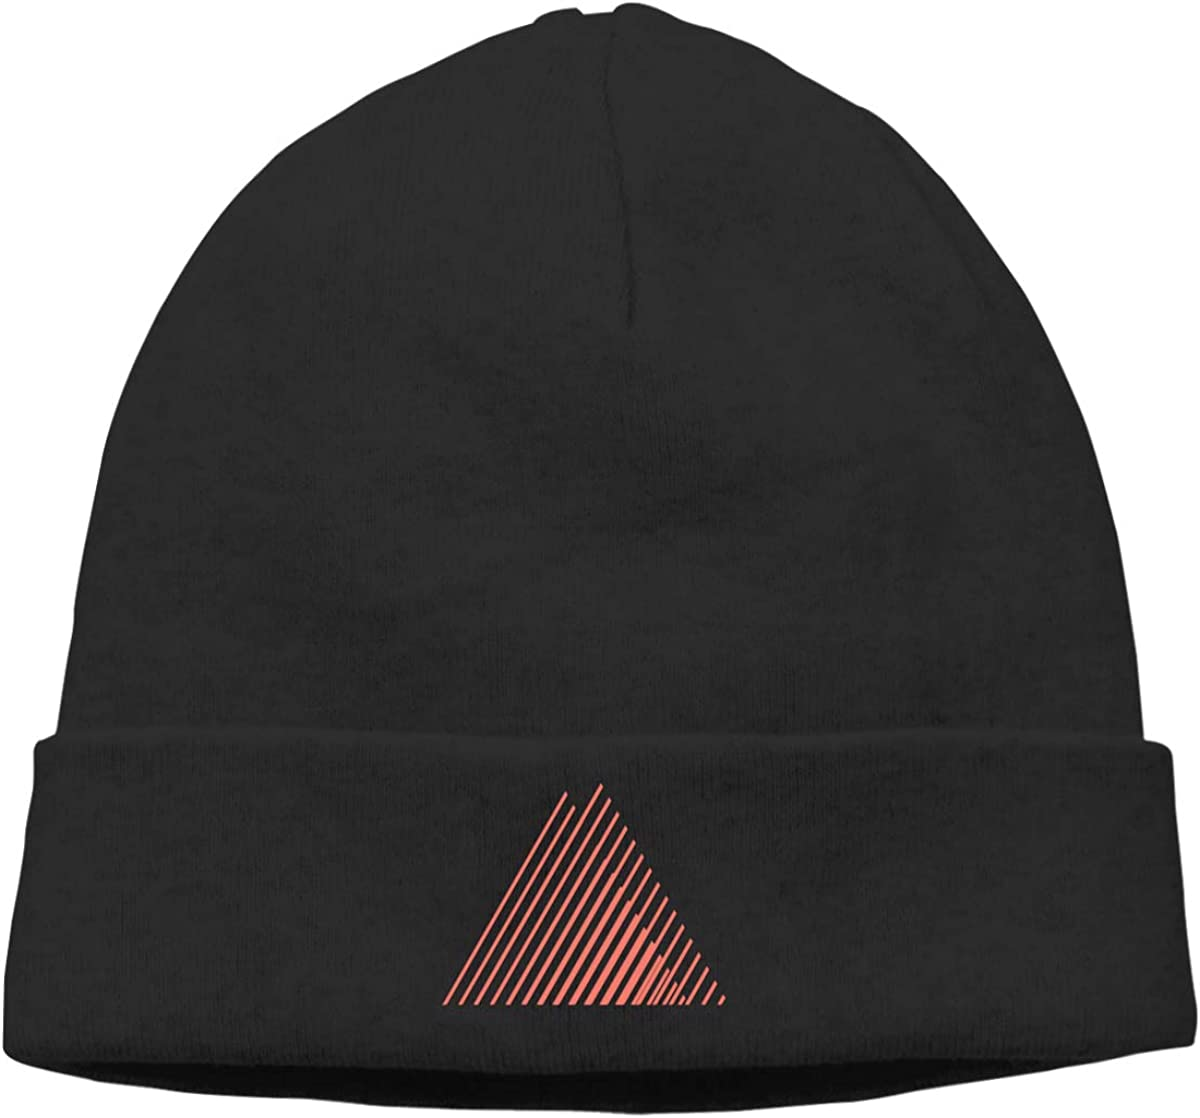 Nskngr Orange Line Triangle Unisex Cuffed Oversized Baggy Knit Cuff Beanie